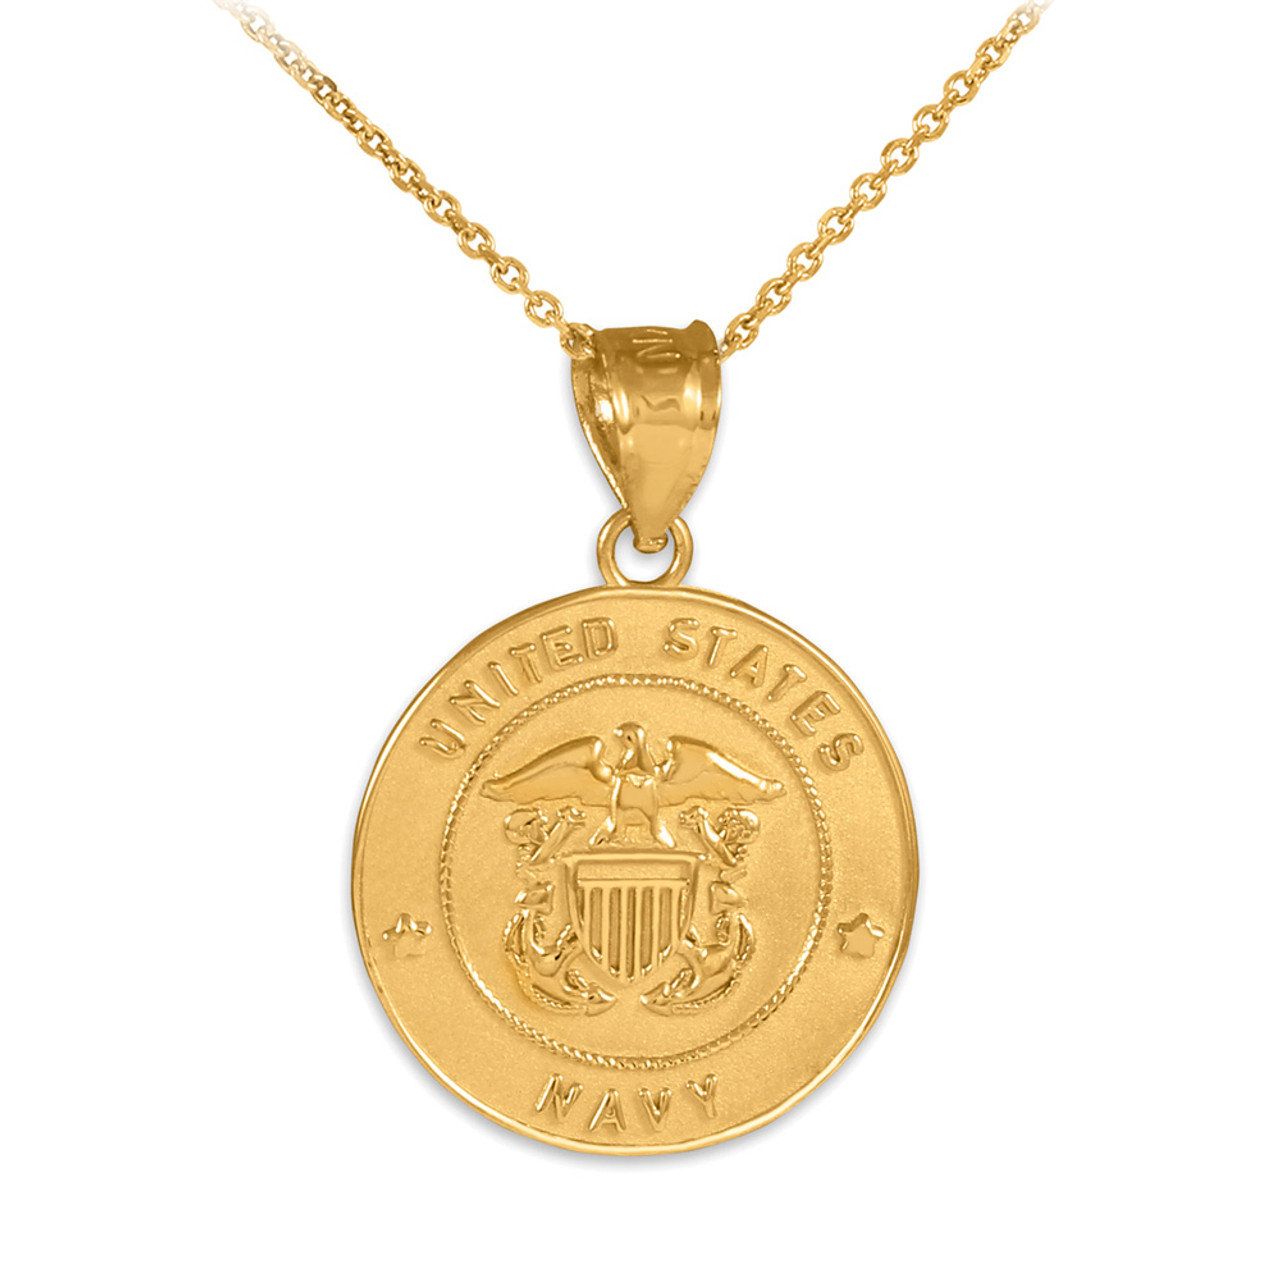 Solid gold us navy coin pendant us navy solid gold coin pendant necklace aloadofball Choice Image